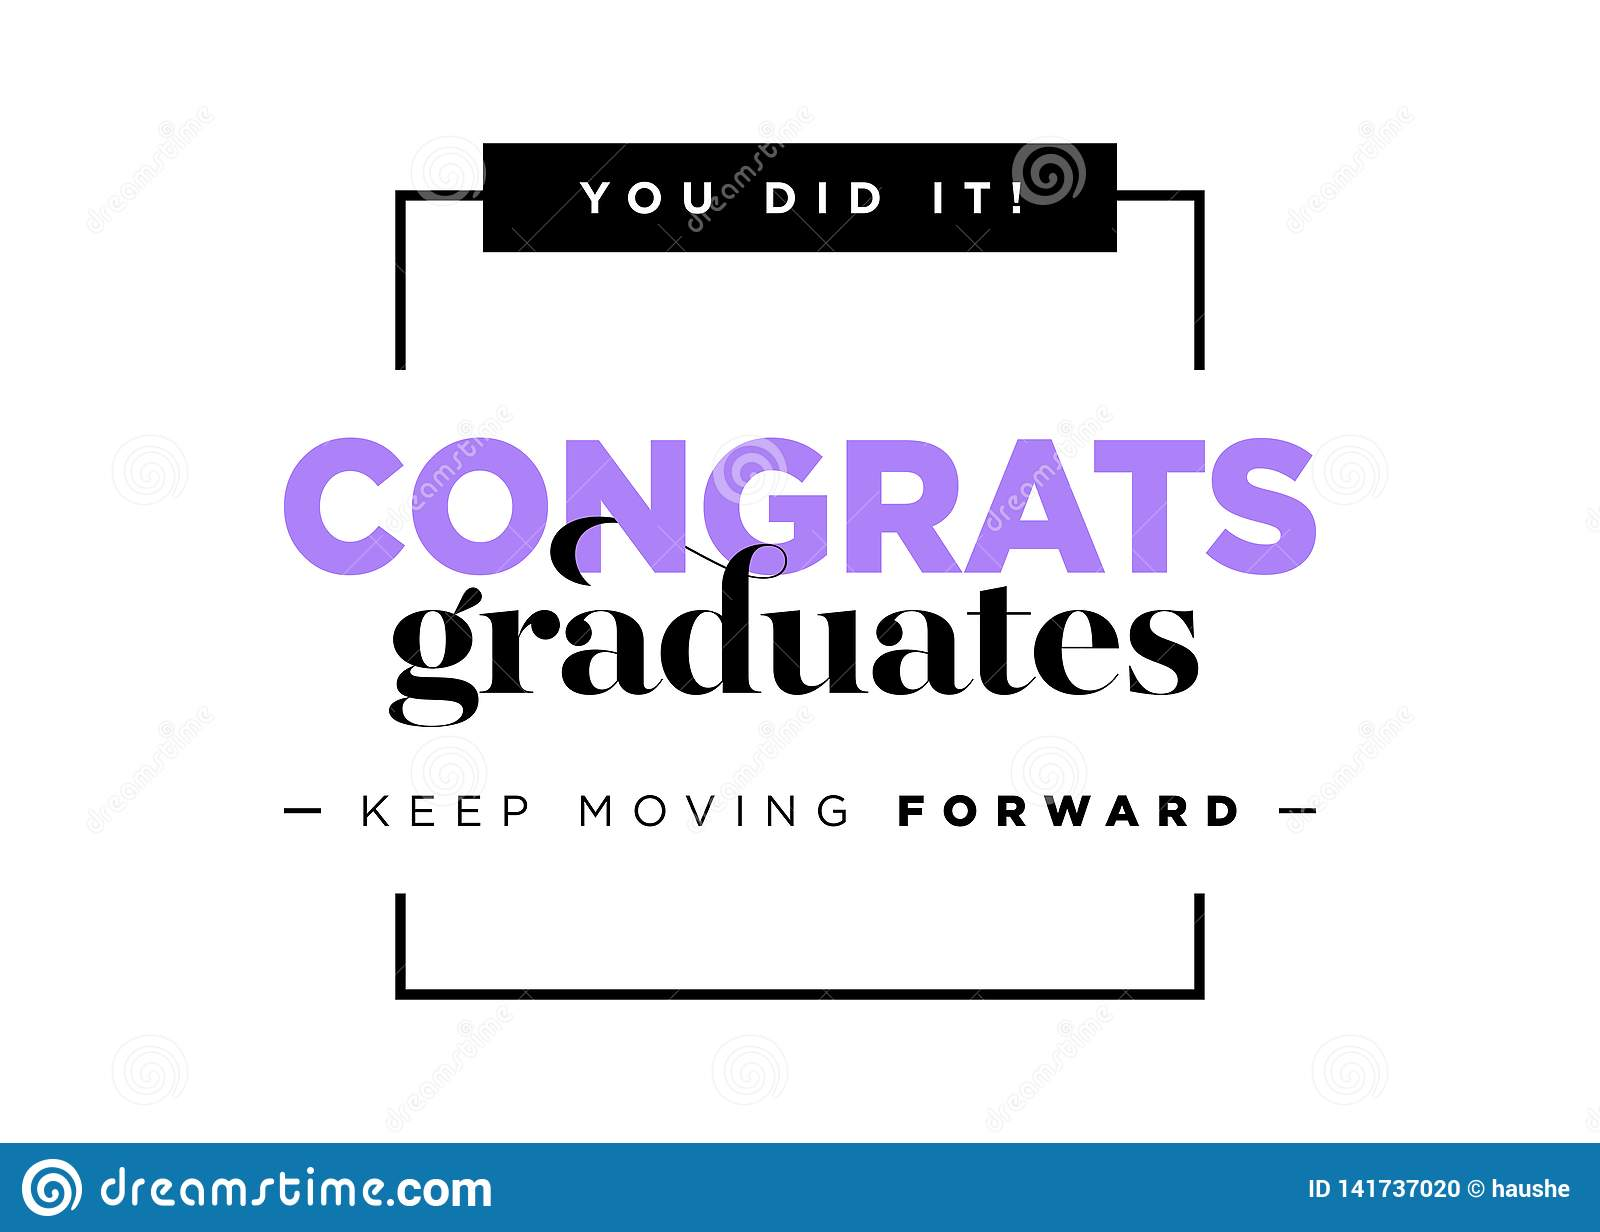 Congratulations Graduates Vector Logo. Graduation Background Template with Inspirational Quote. Greeting Banner for College